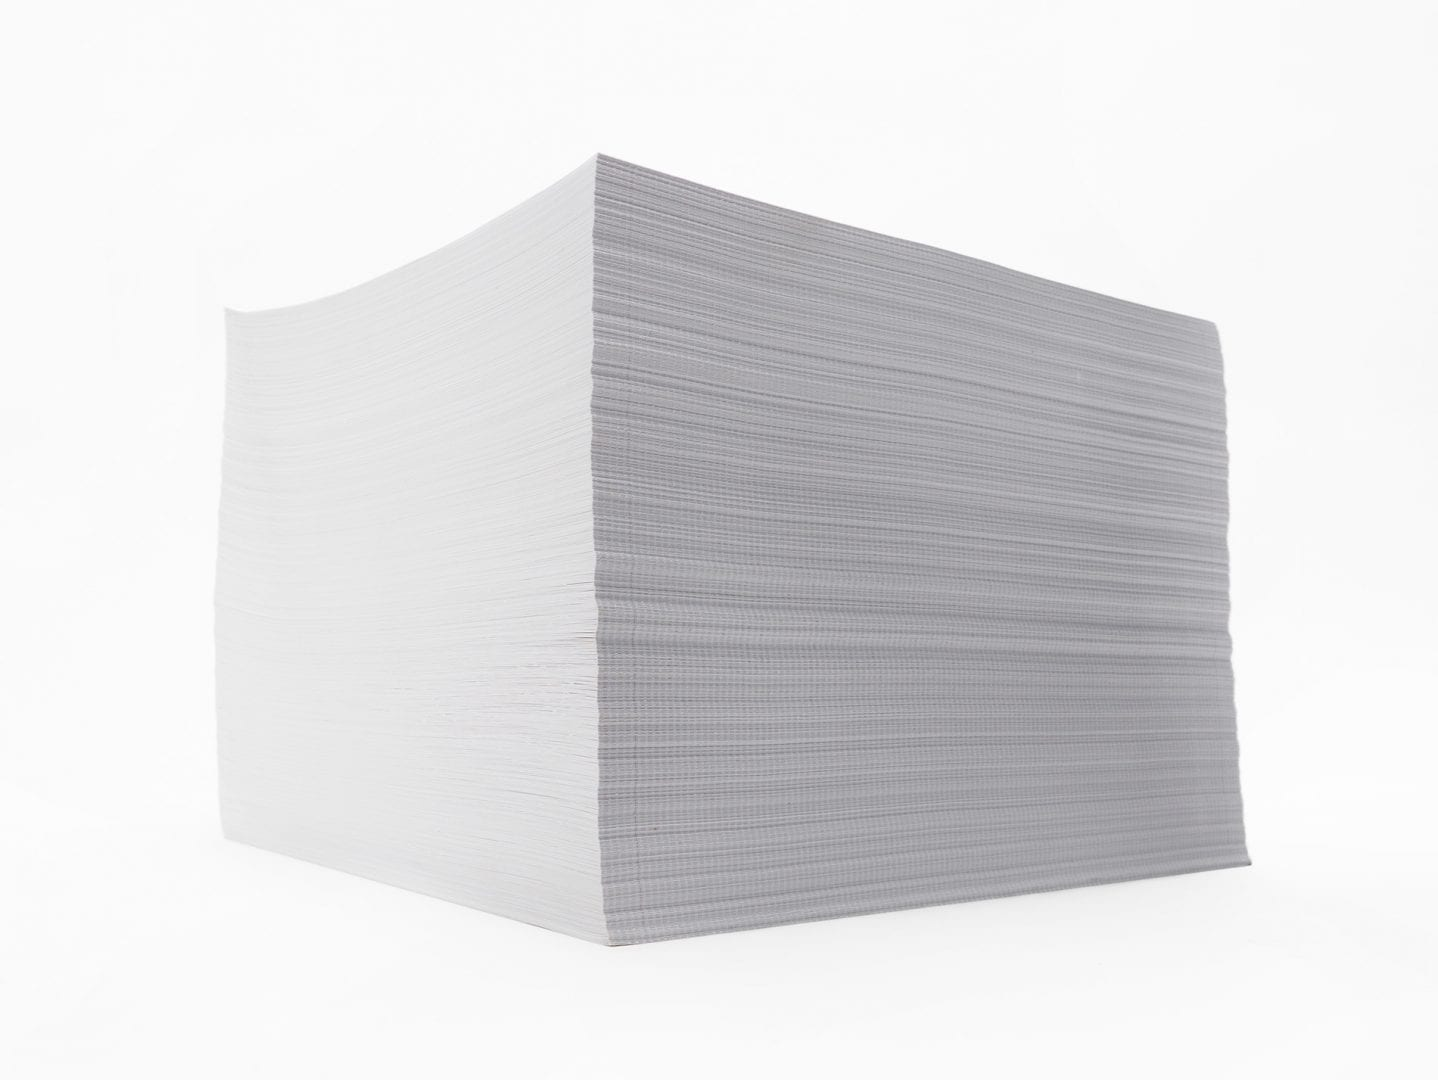 8.5 x 11 inches 100 sheet pack Braille Paper